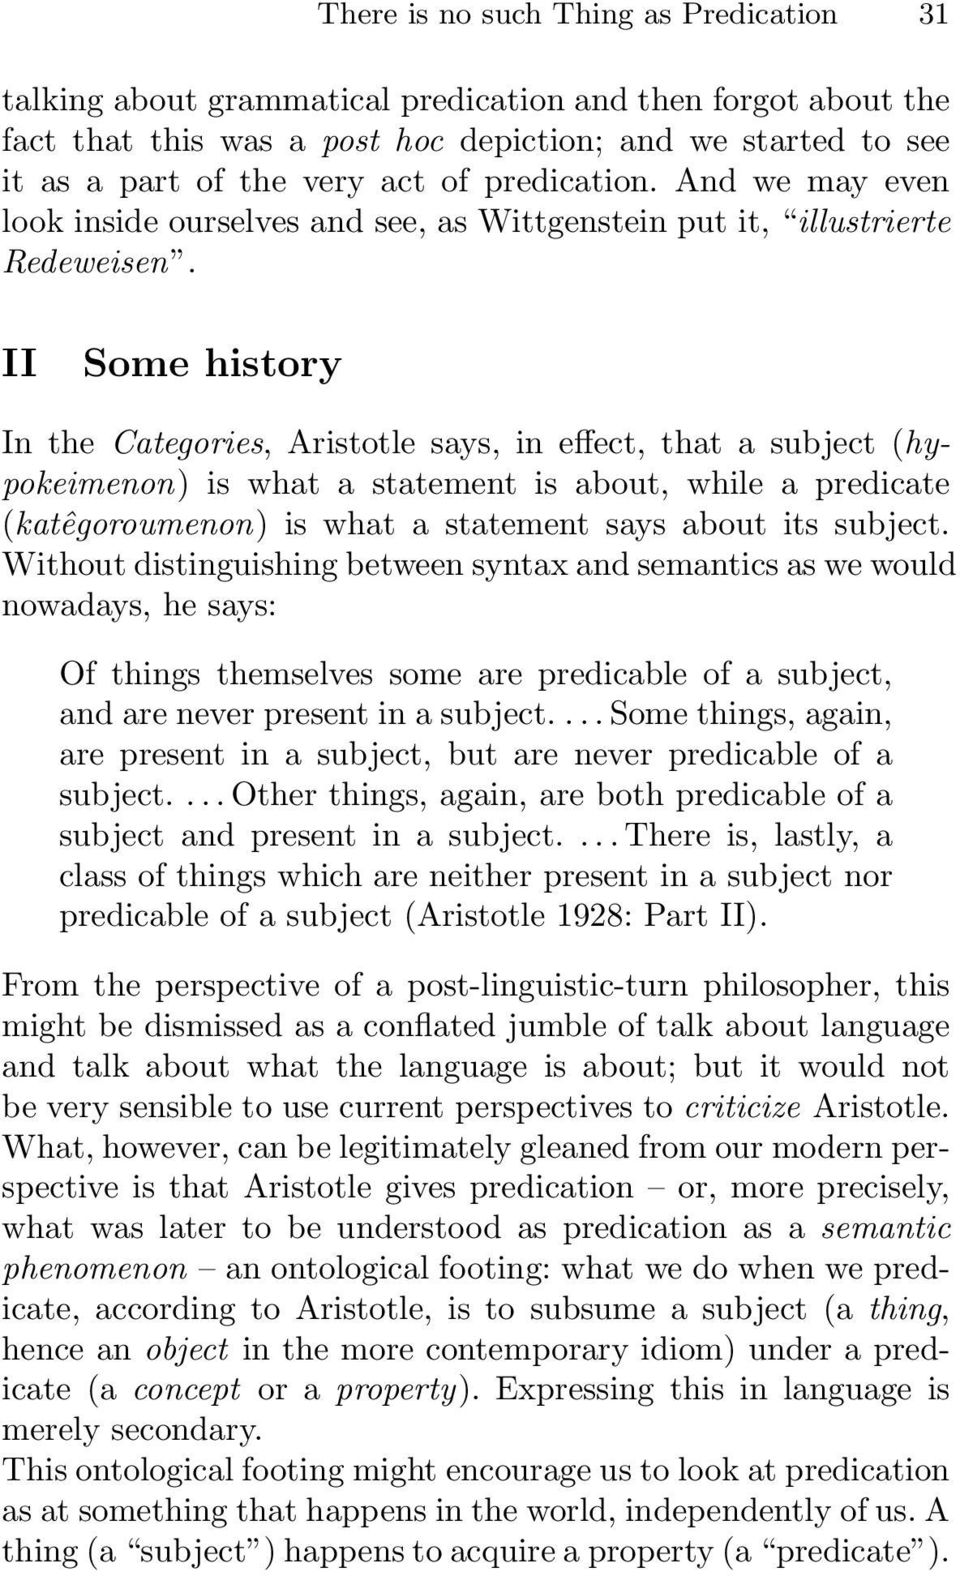 II Some history In the Categories, Aristotle says, in effect, that a subject (hypokeimenon) is what a statement is about, while a predicate (katêgoroumenon) is what a statement says about its subject.